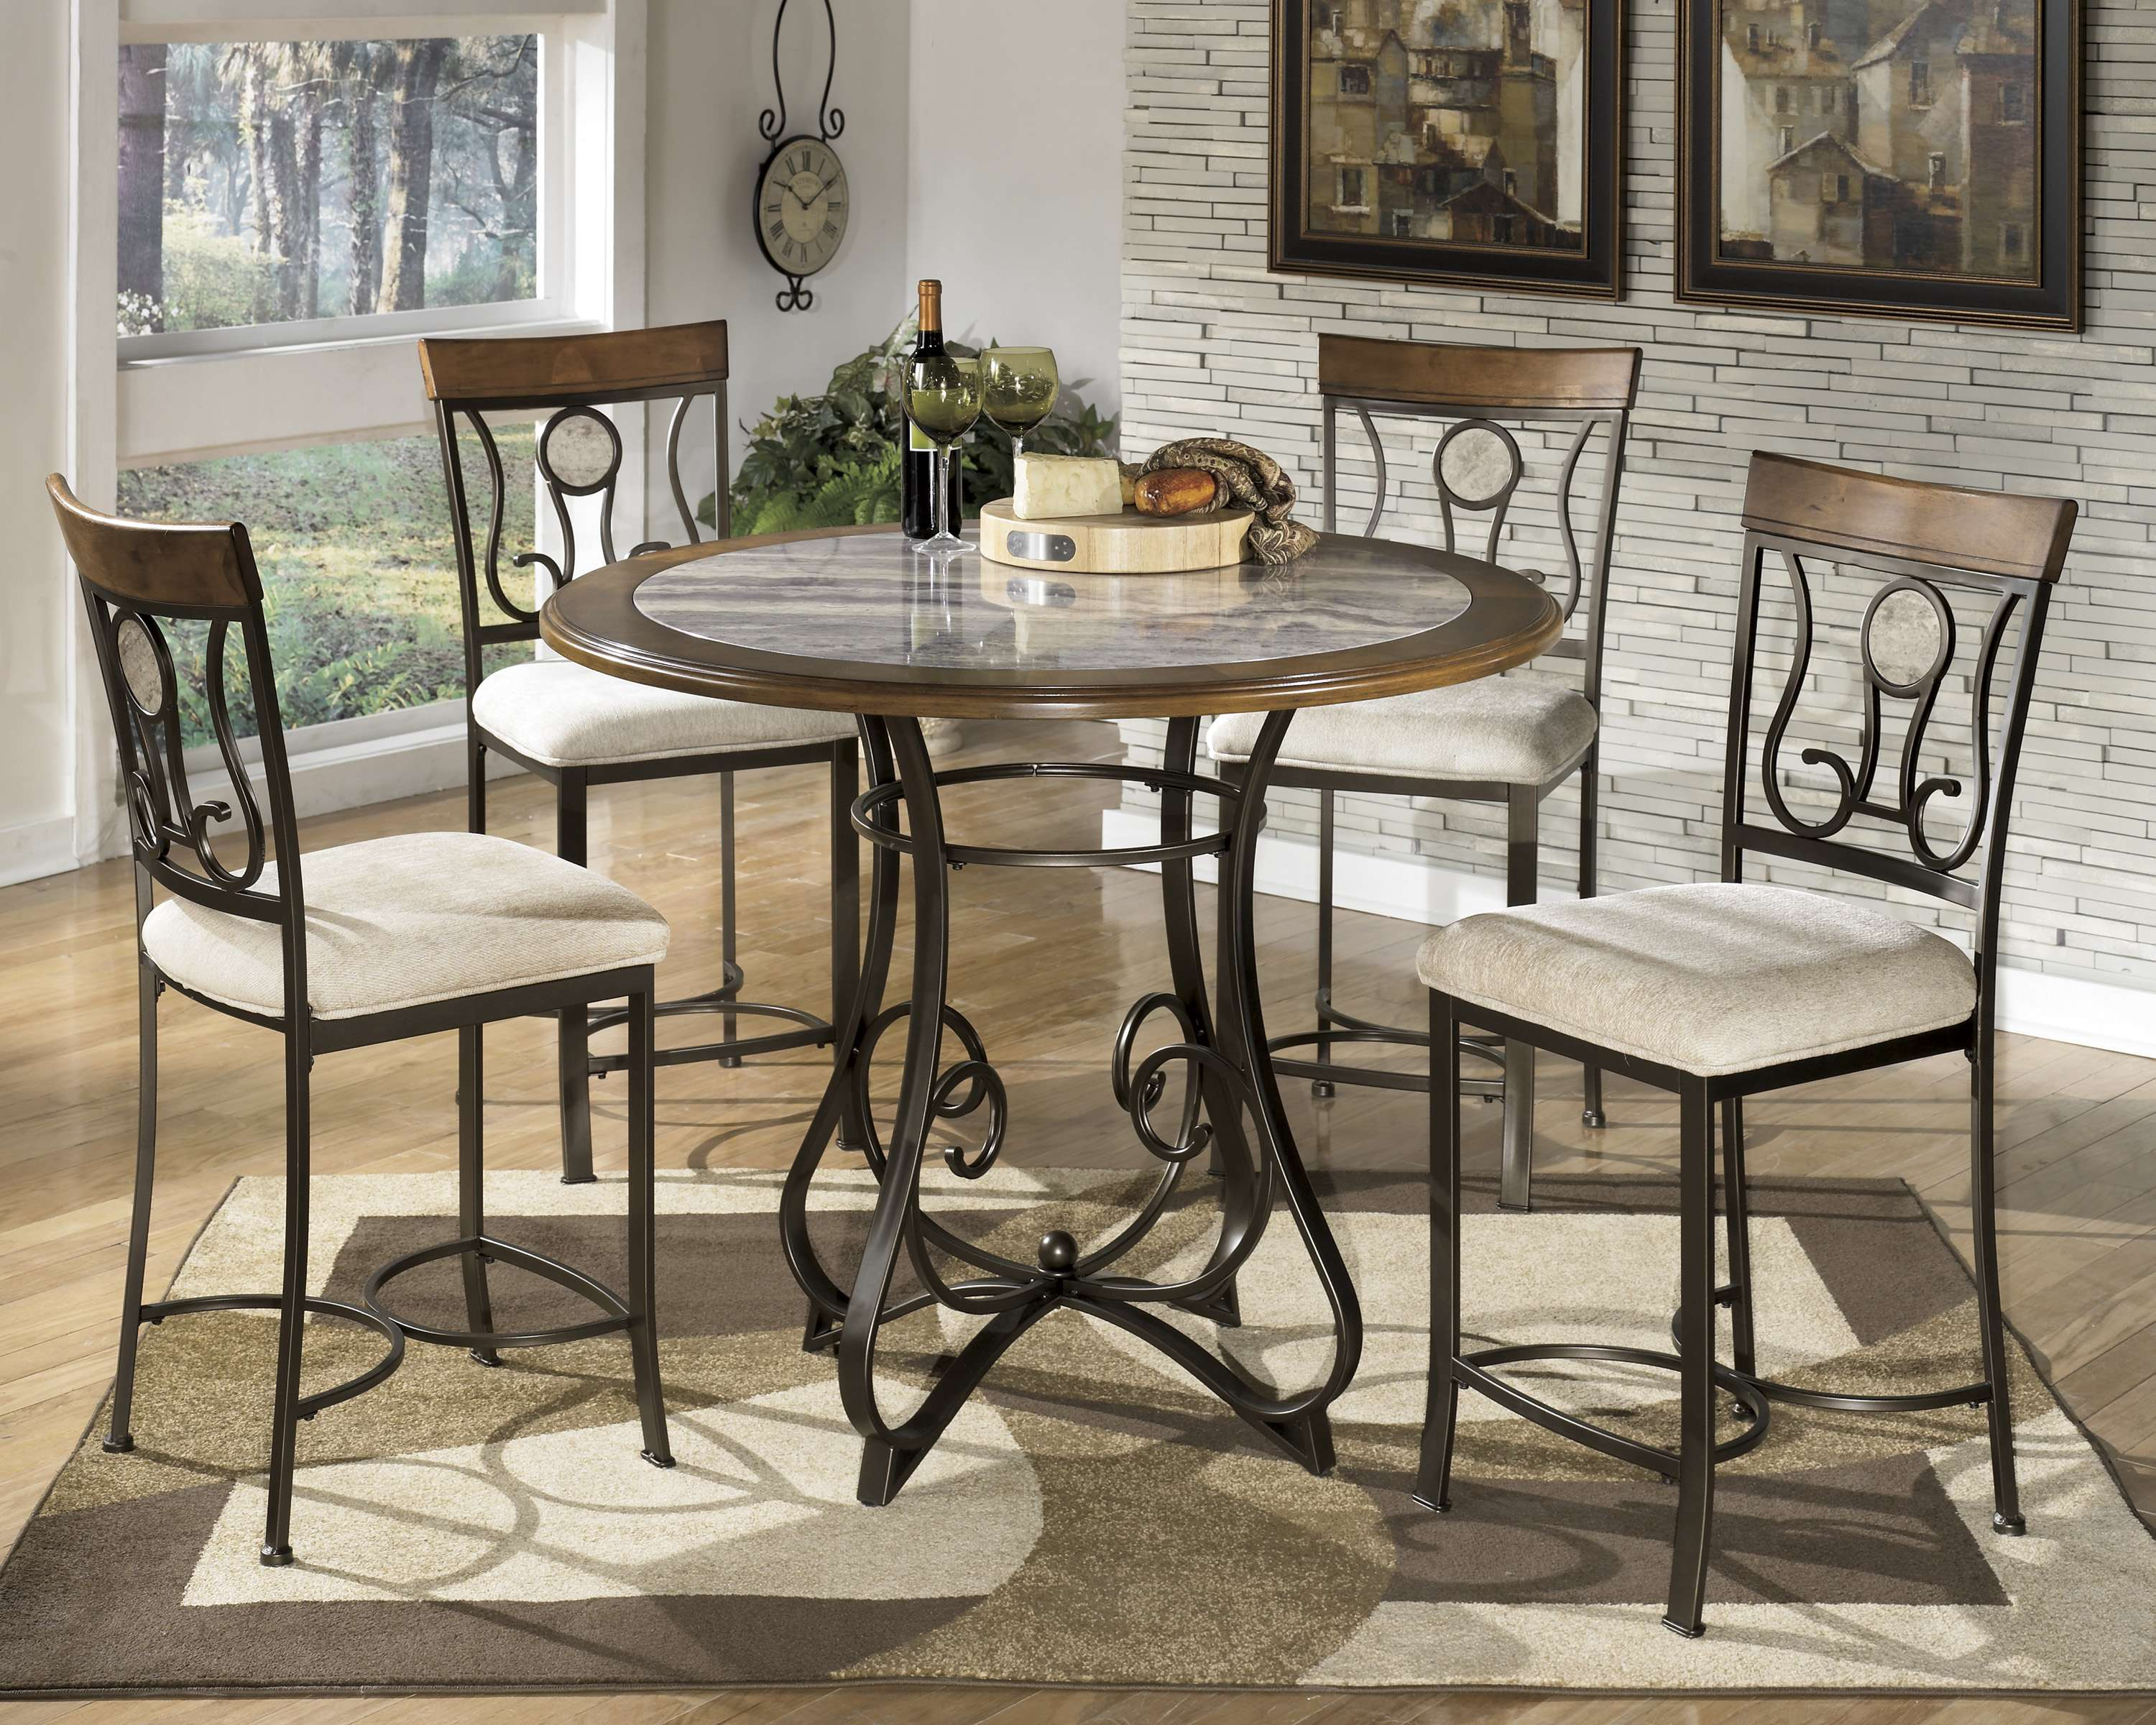 Hopstand Brown 5 Piece Dining Room Counter Table Set